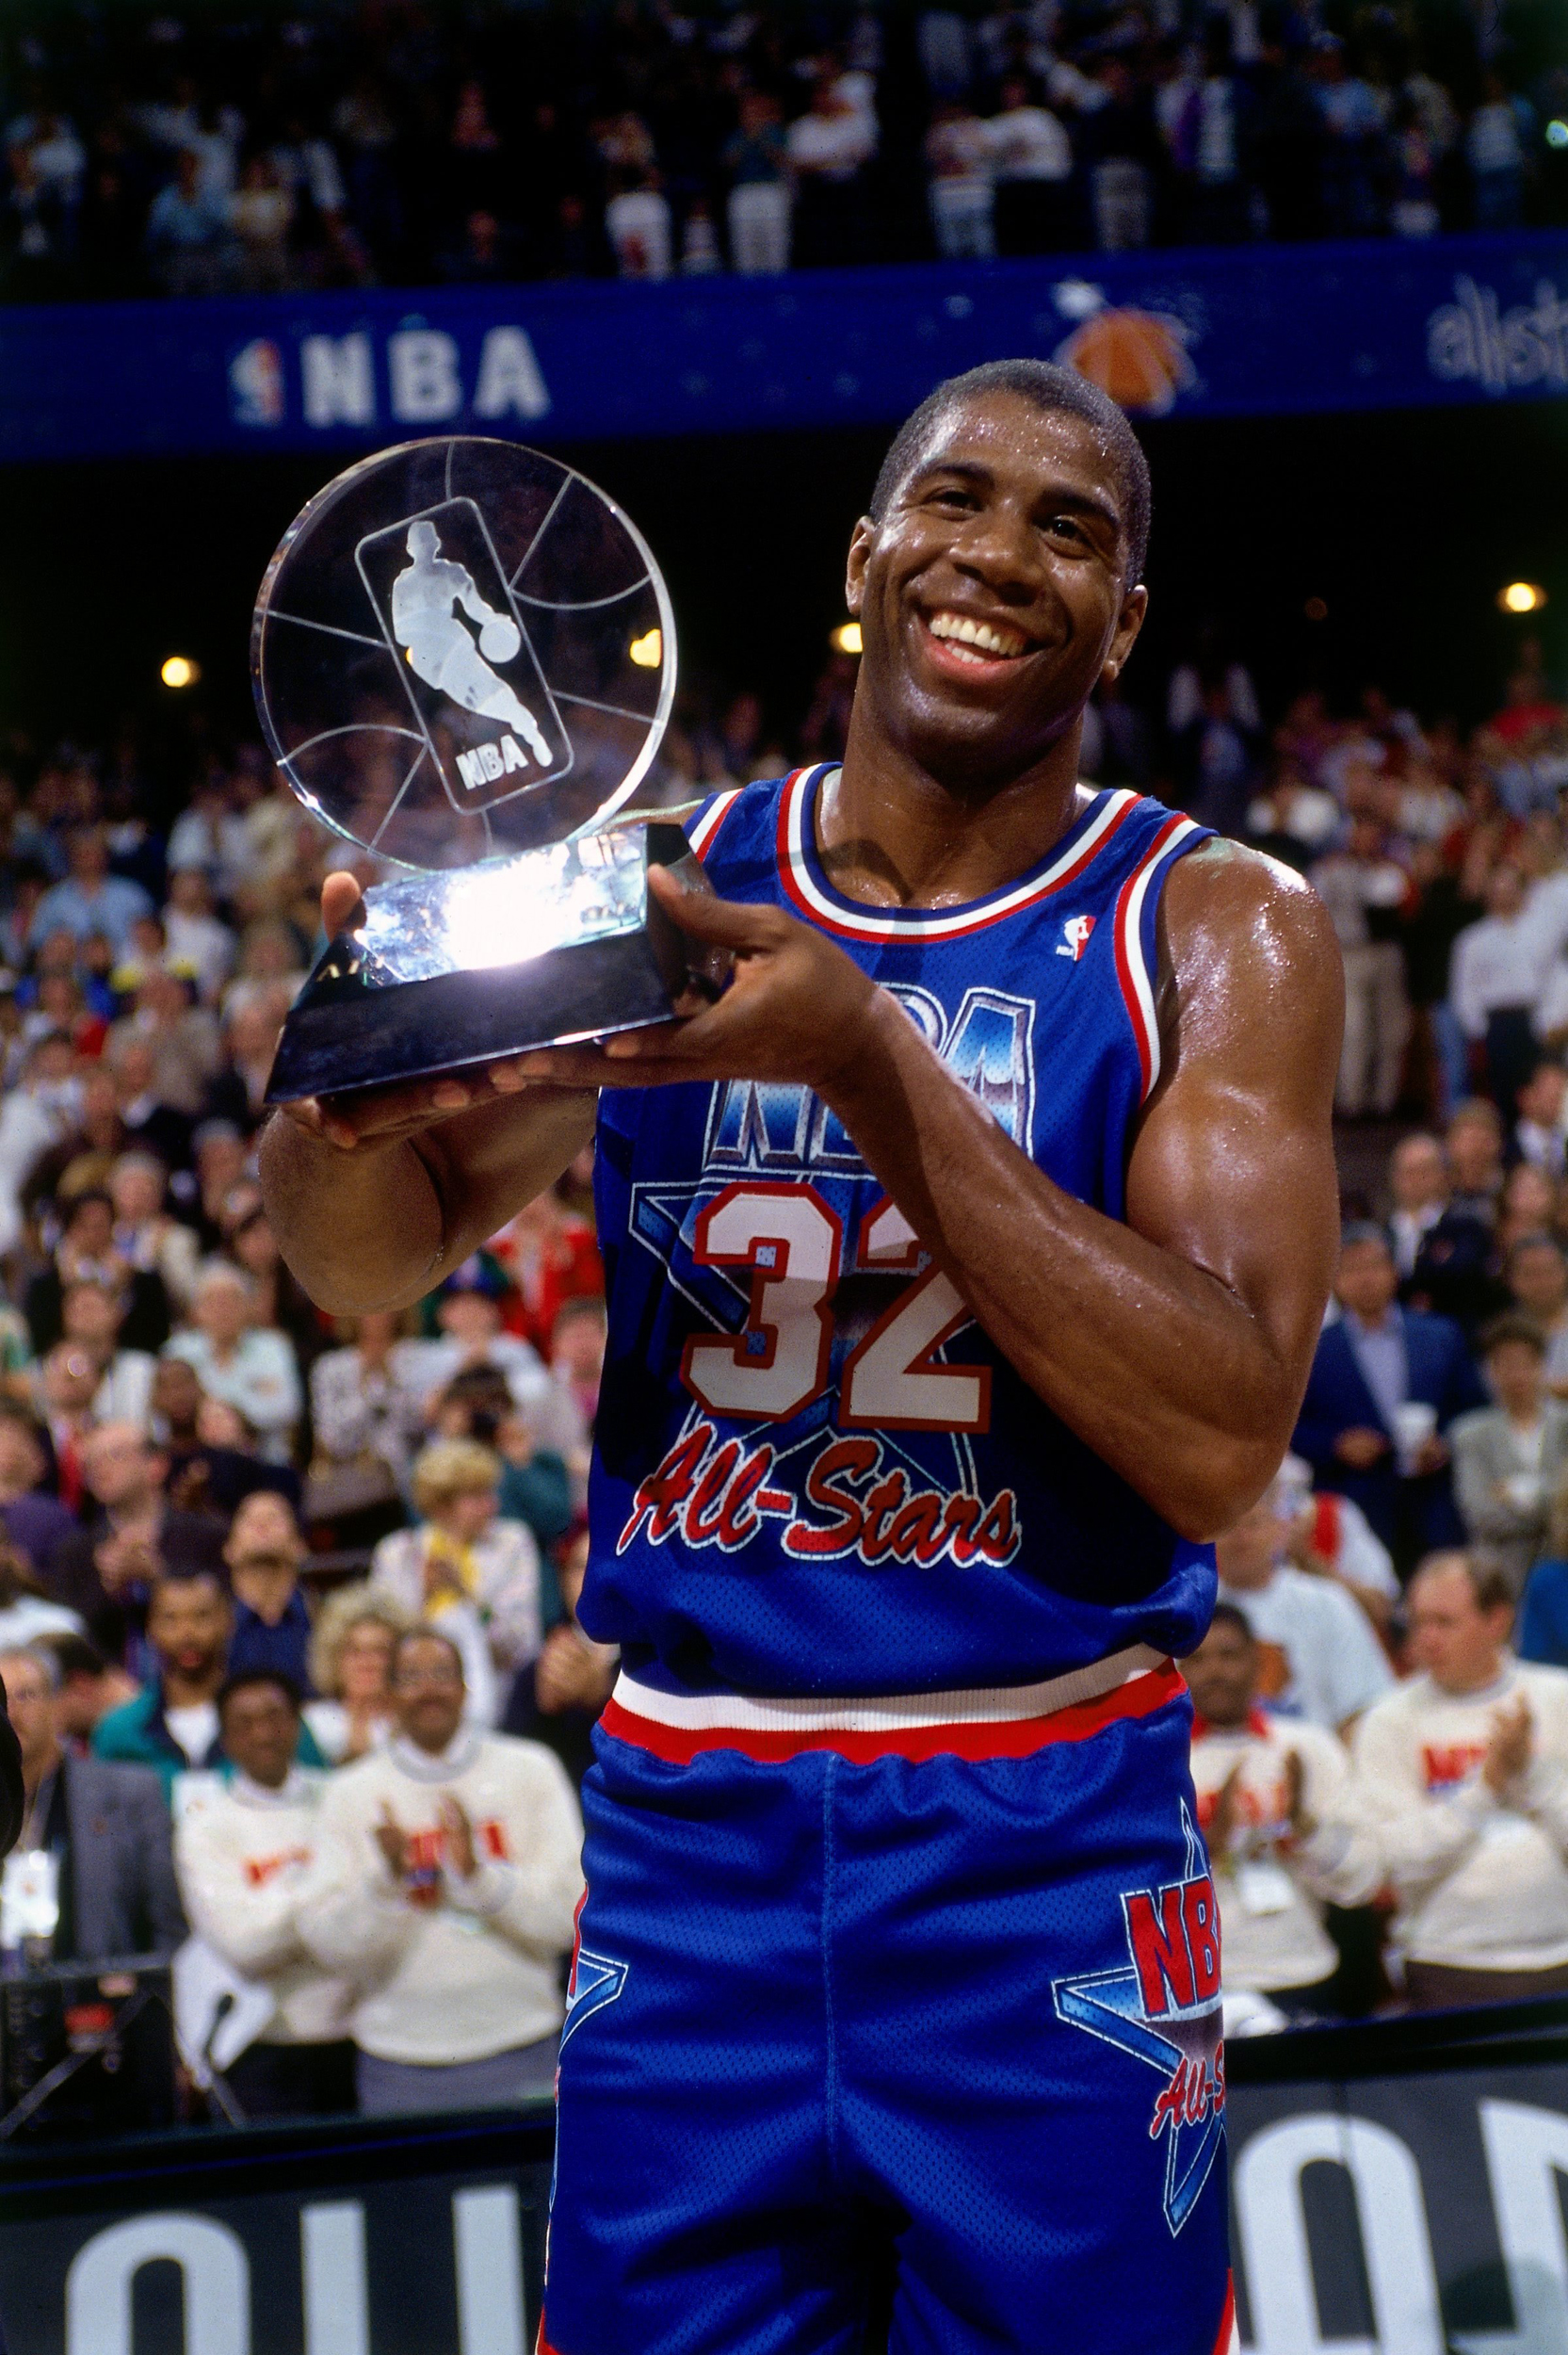 Magic Johnson #32 of the Western Conference All-Stars holds the MVP trophy following the 1992 NBA All Star Game on February 9, 1992 at the Orlando Arena in Orlando, Florida.